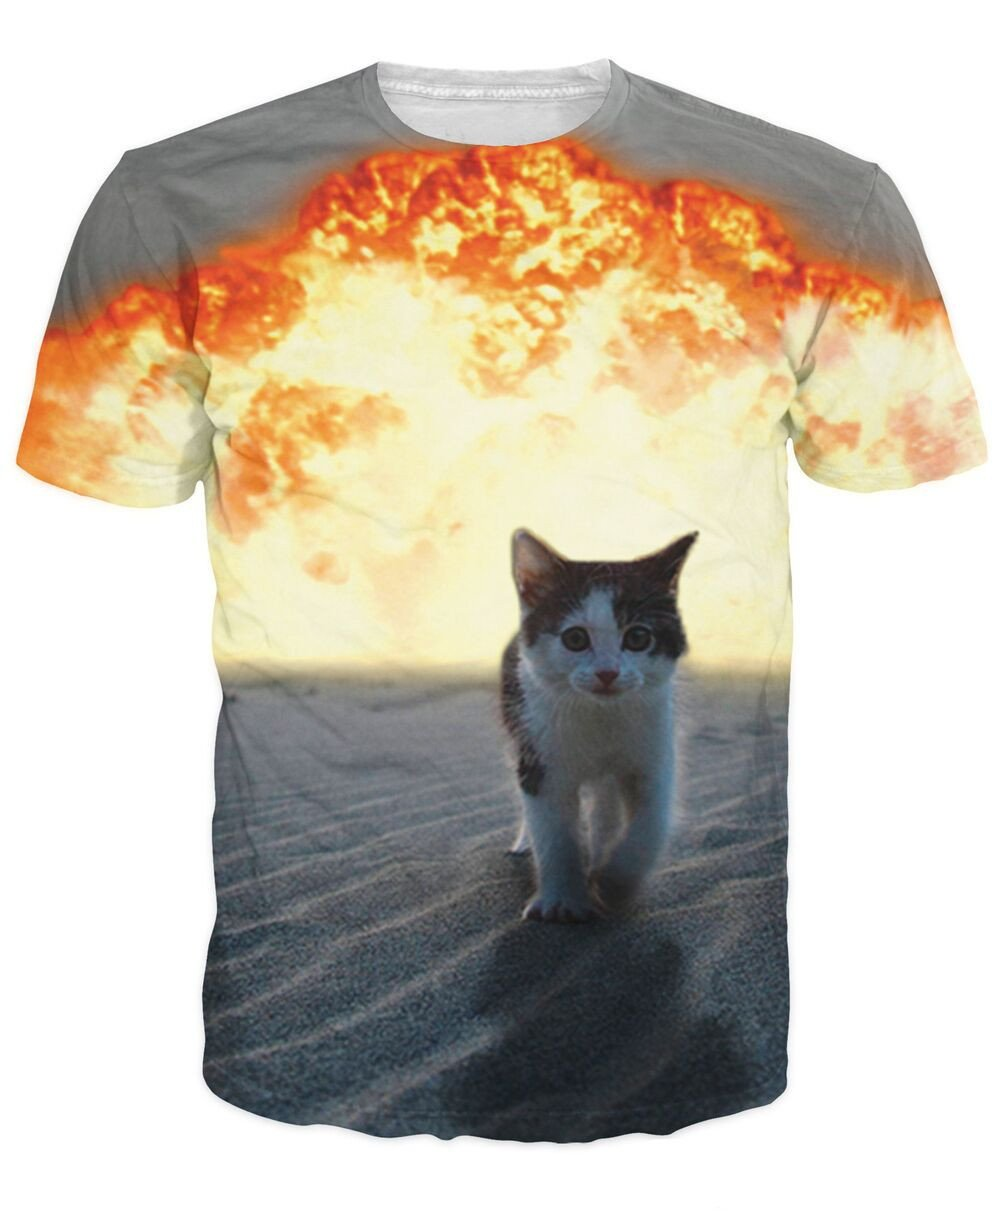 ulani-t-shirts-s-grey-cool-cat-explosion-t-shirt-animal-print-3d-grey-t-shirt-24644337935_2000x.jpg